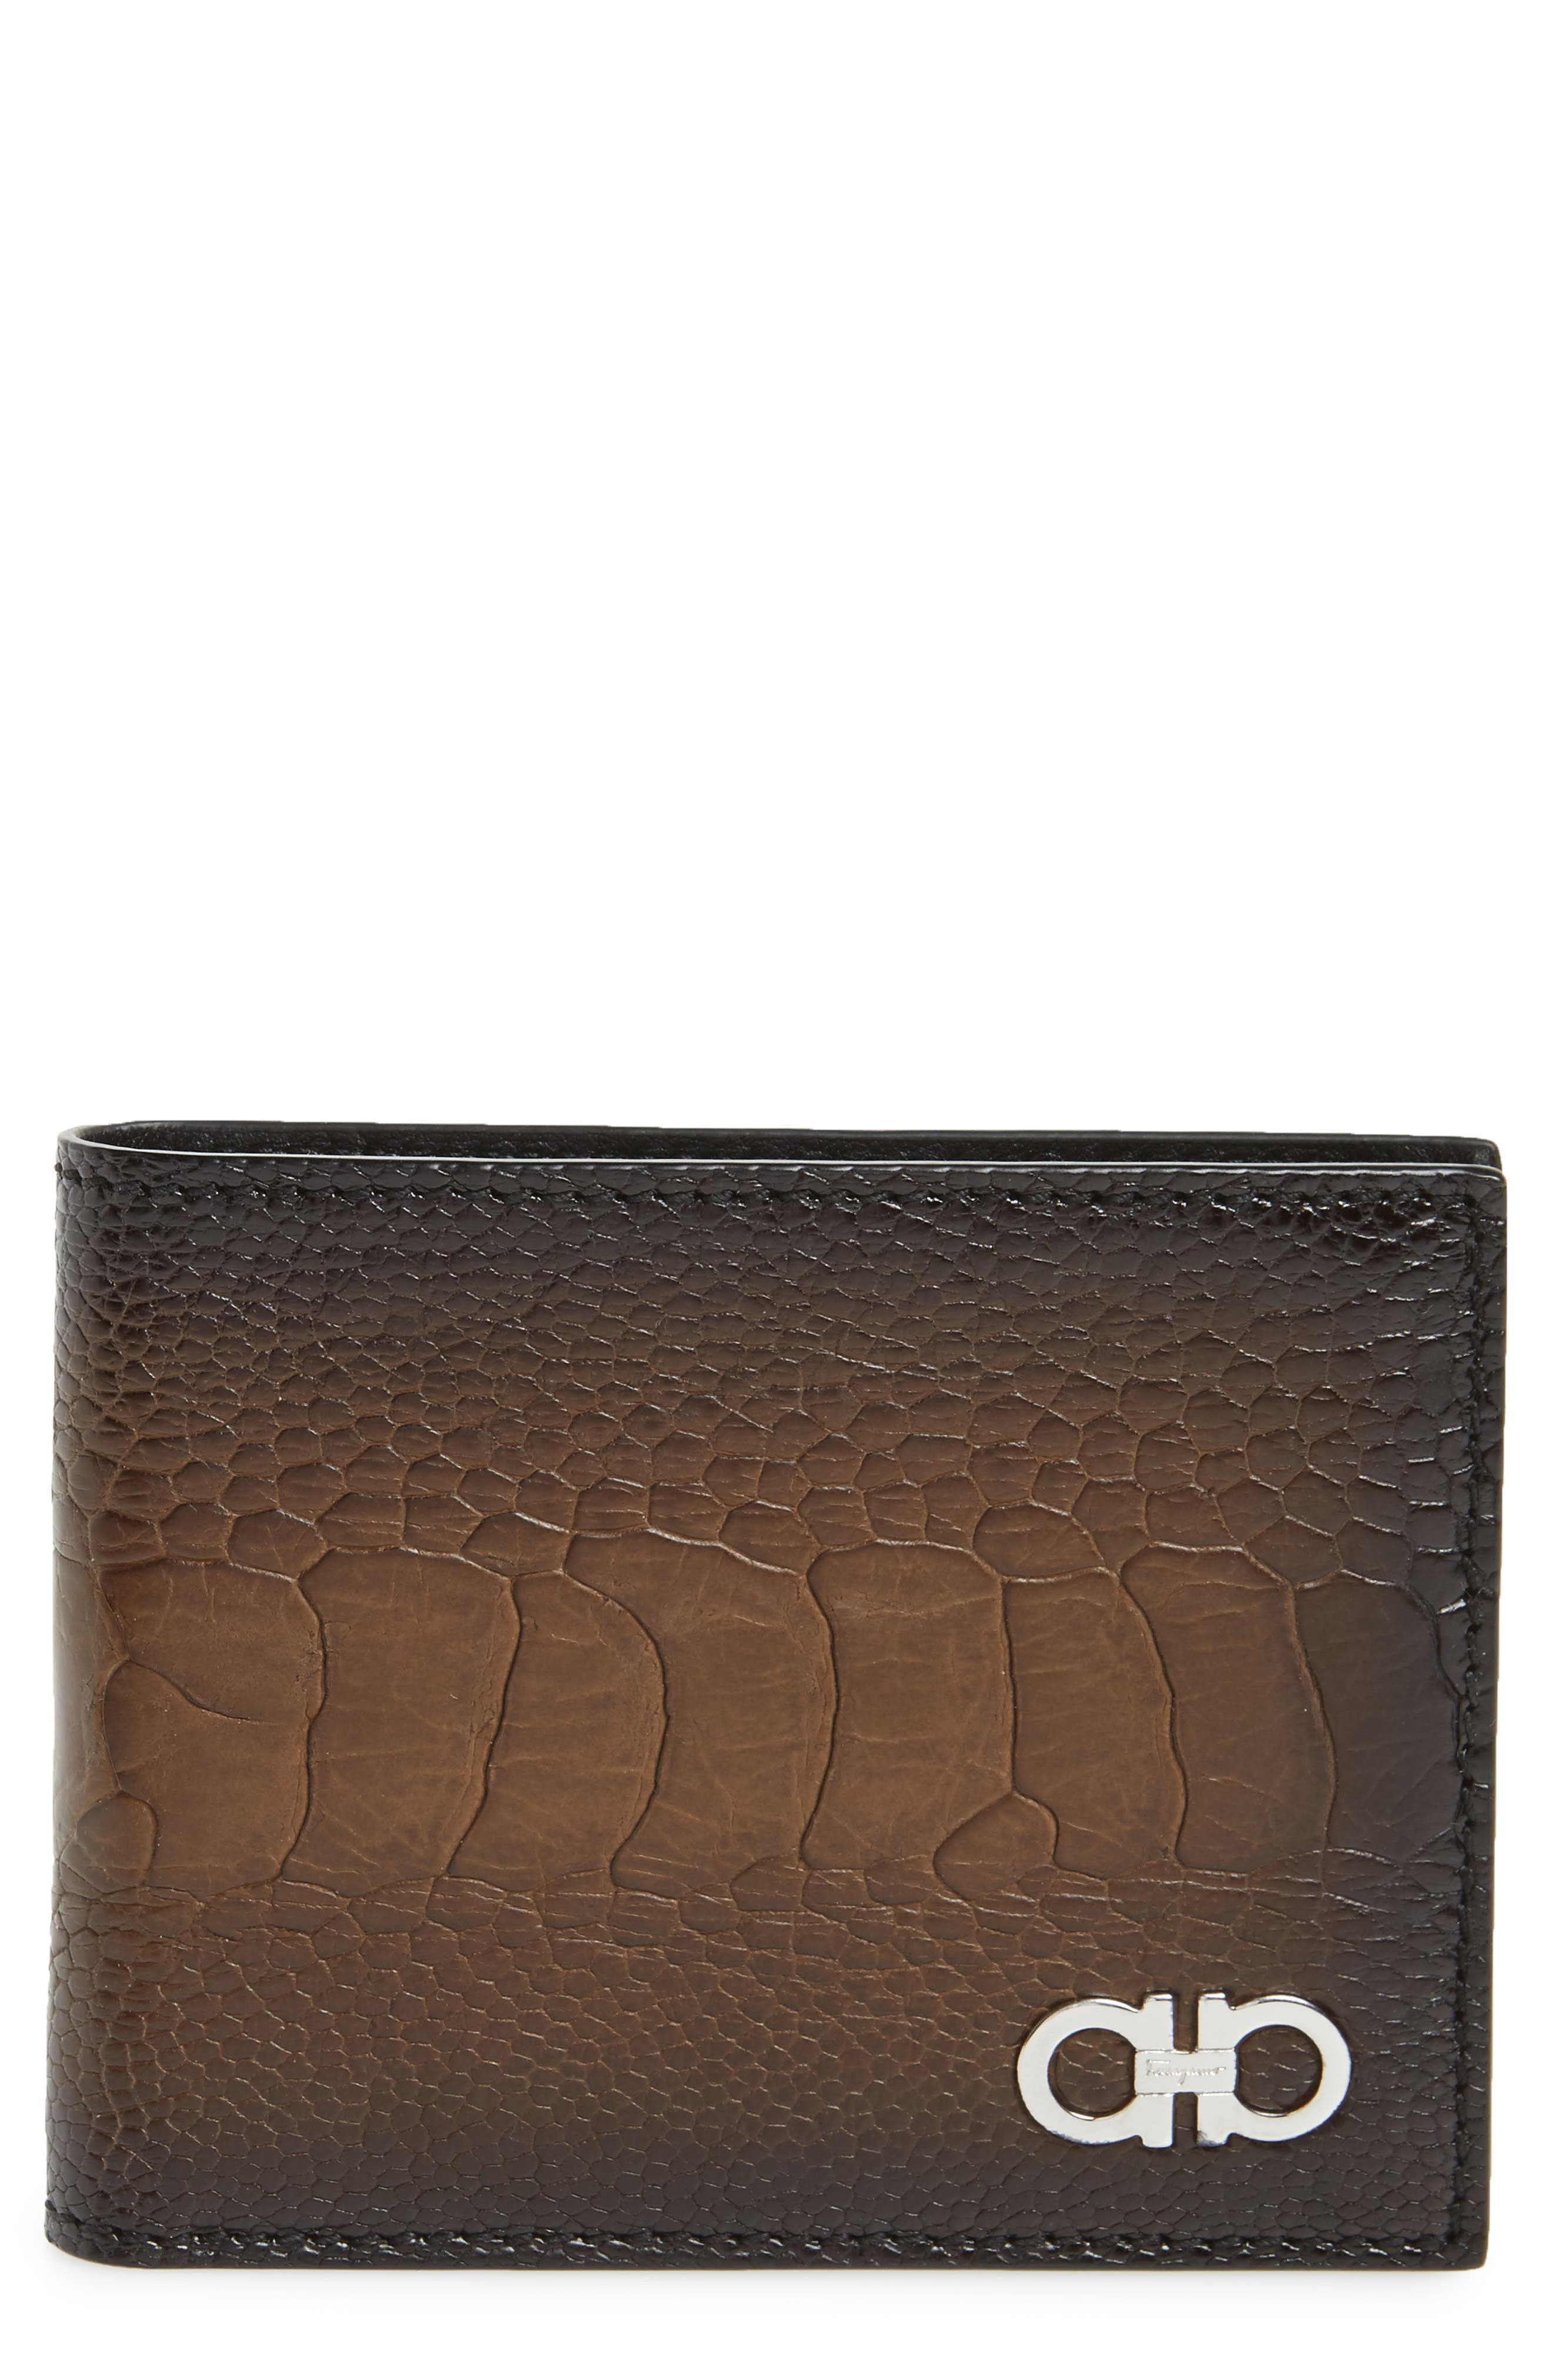 Leather Wallet,                             Main thumbnail 1, color,                             240